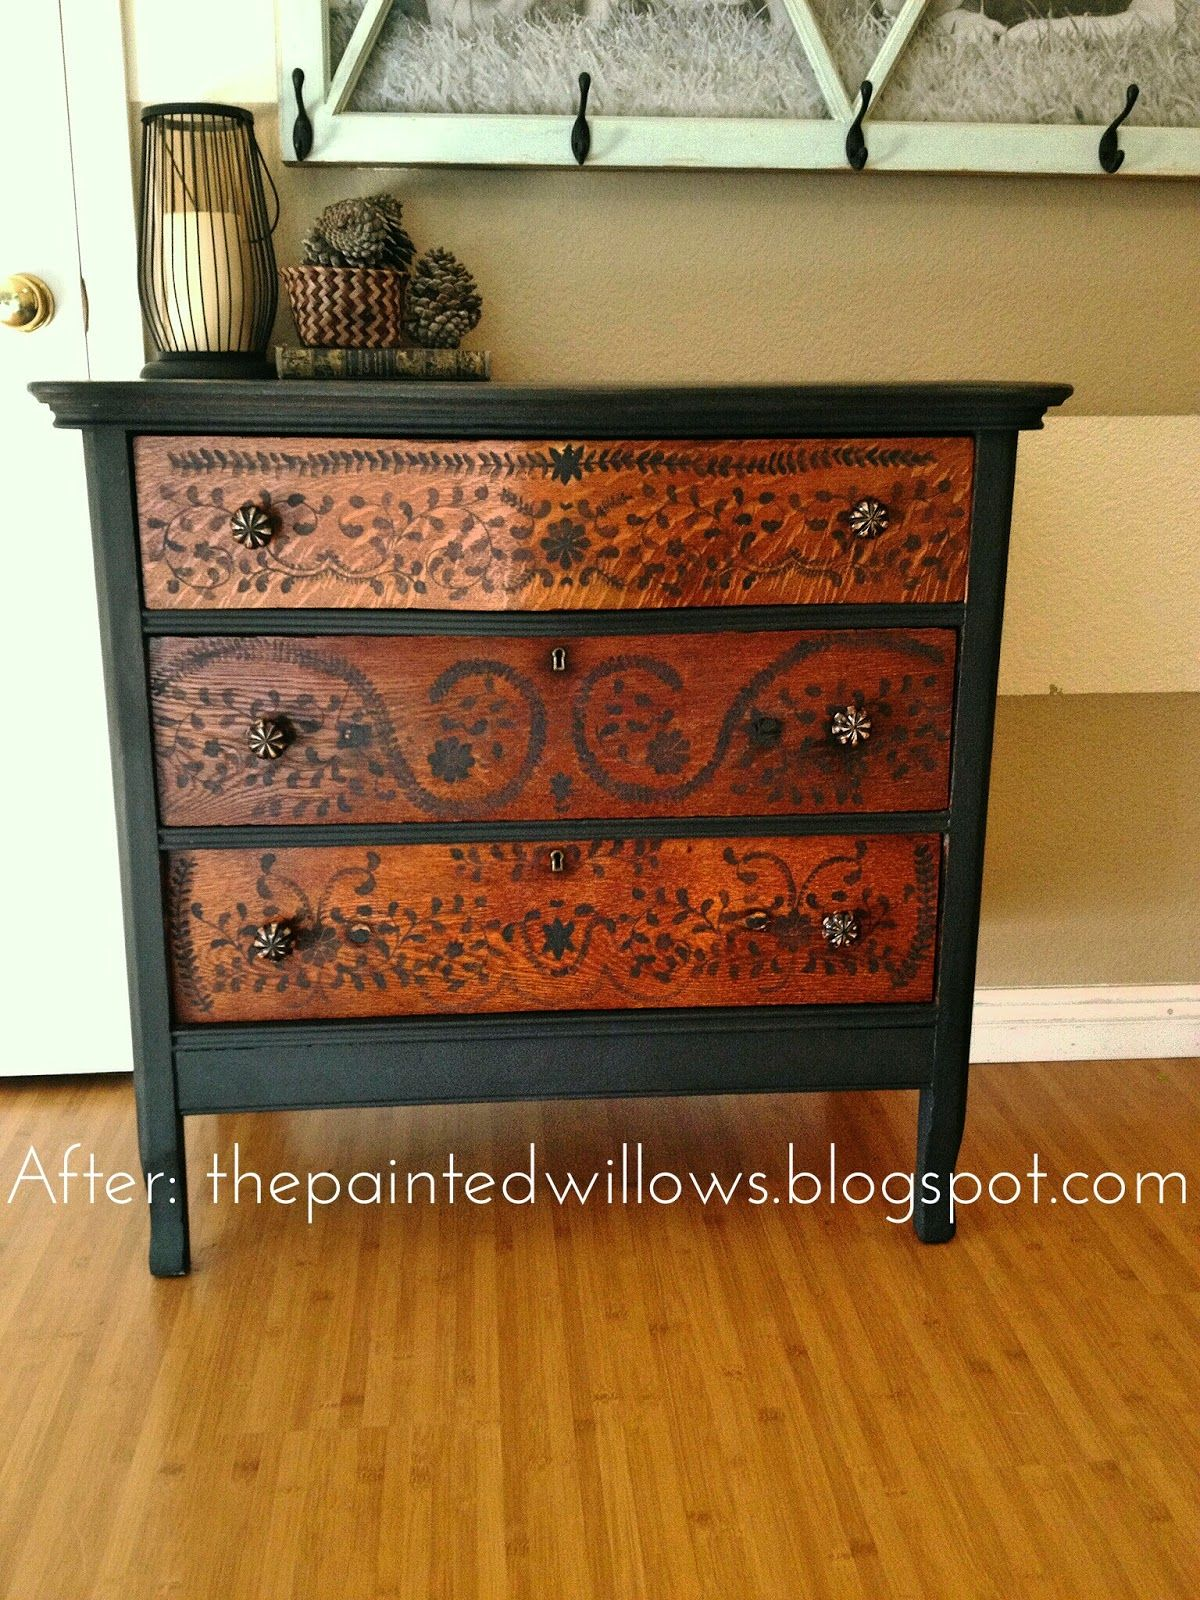 Furniture Gallery: tons of before and after DIY furniture redo ideas  including this Miss Mustard Seed inspired antique dresser painted black - Furniture Gallery: Tons Of Before And After DIY Furniture Redo Ideas